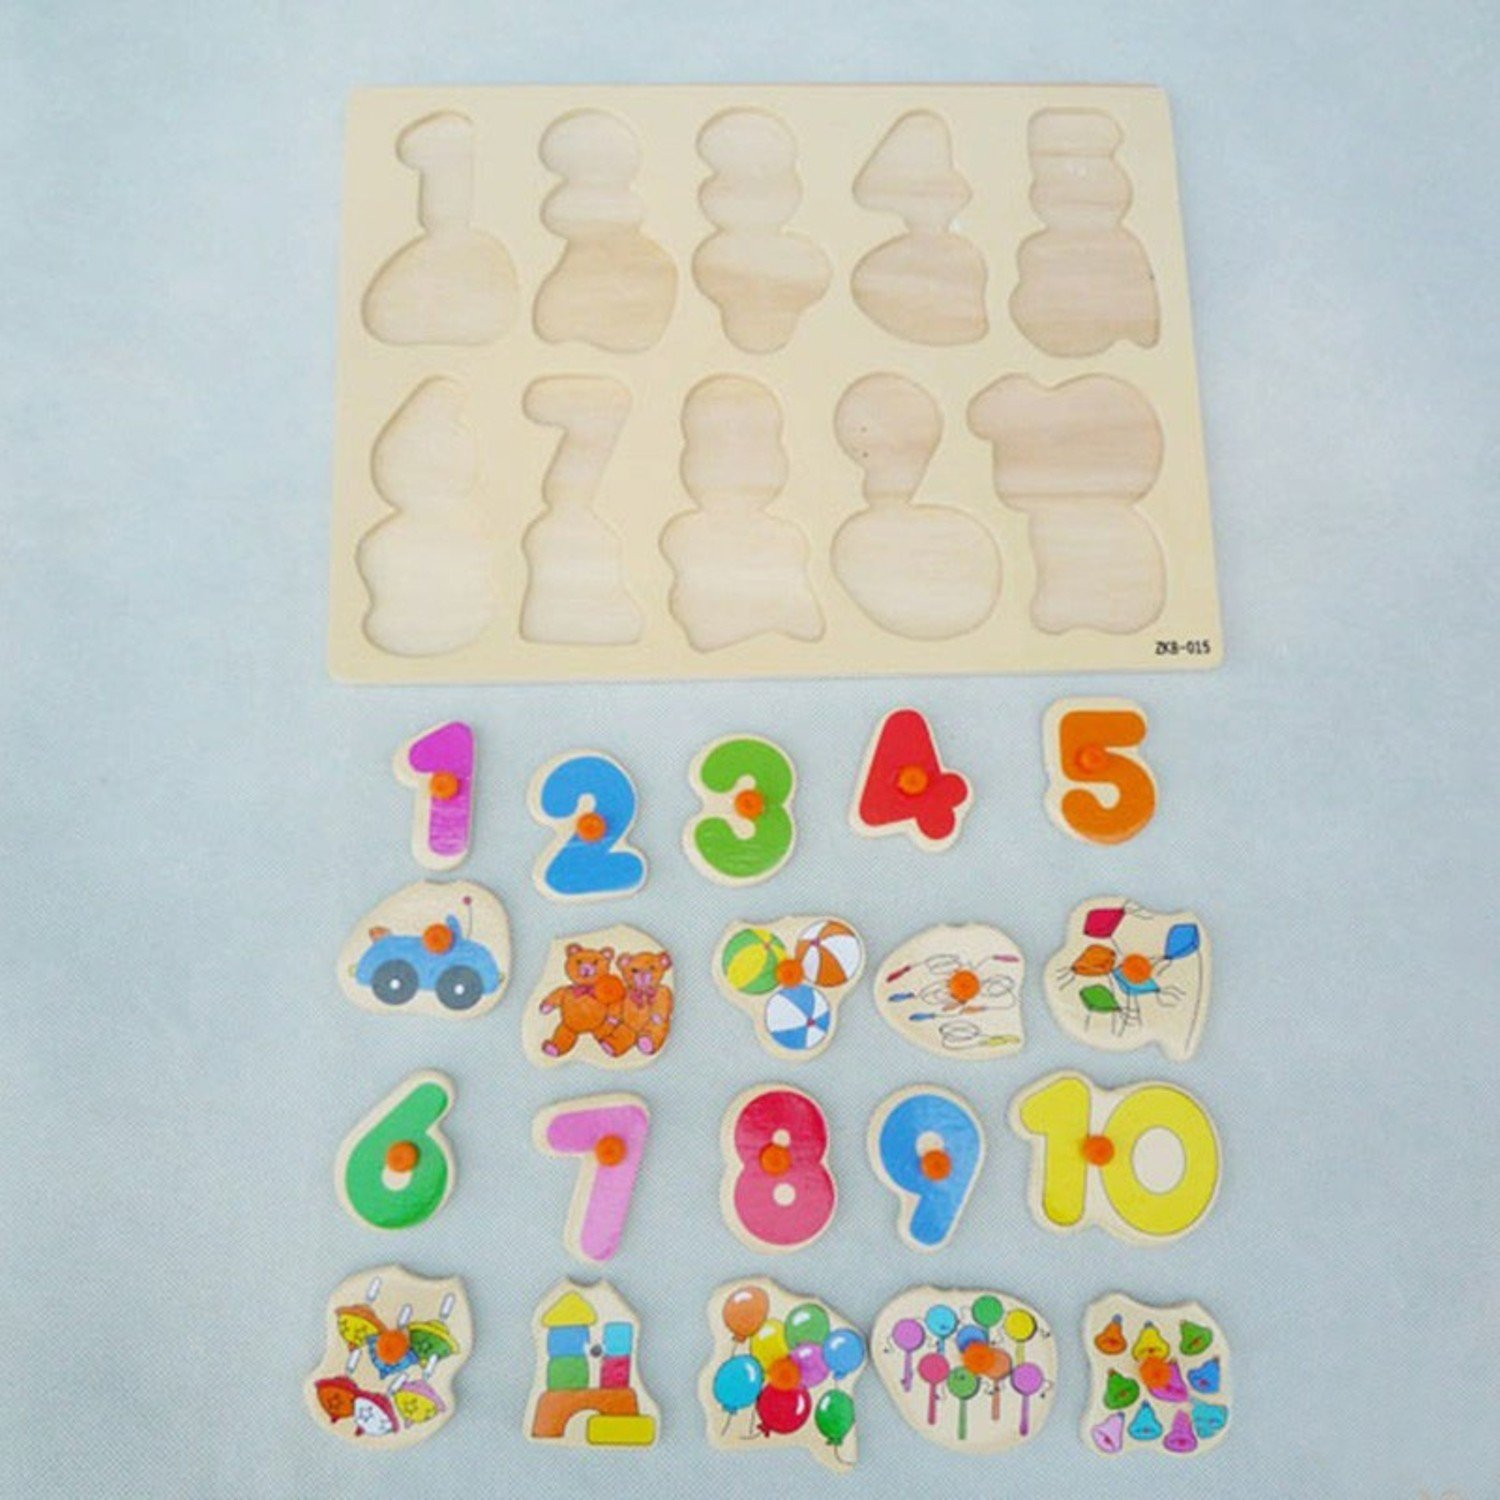 Learning Journey Lift And Learn Toys Number Slide Puzzle Fun Way To Improve Counting Skills Durable Wooden Pieces Are Child Friendly.